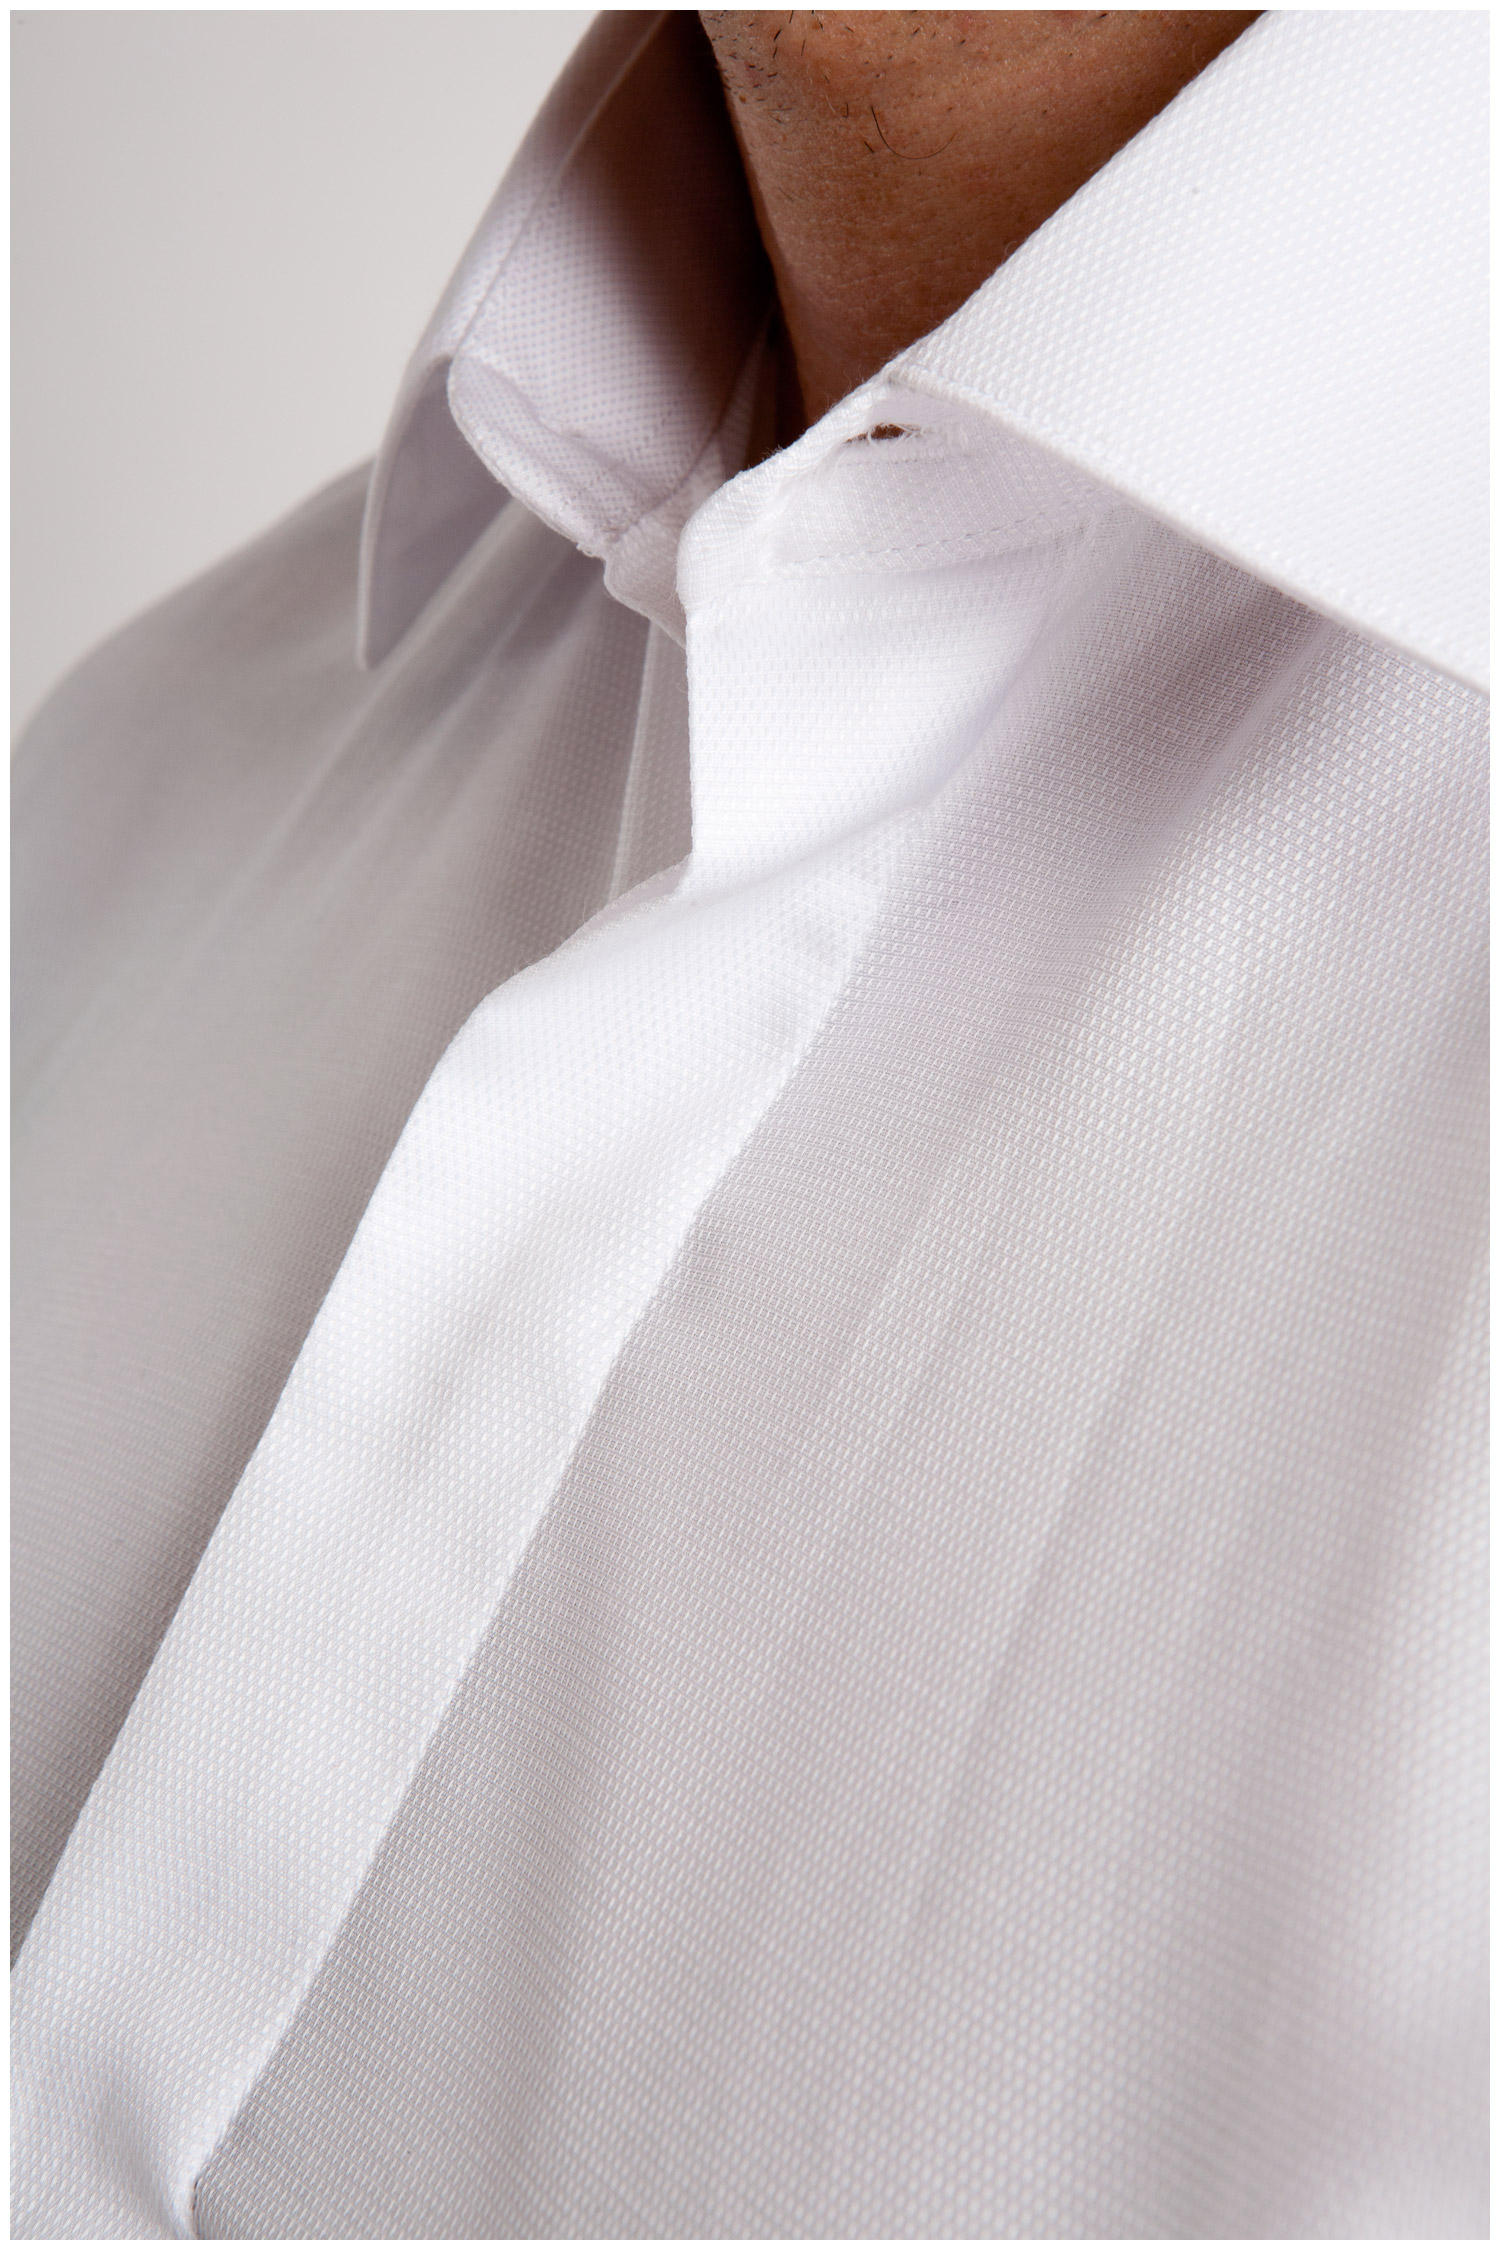 Camisas, Ceremonia, 106528, BLANCO | Zoom